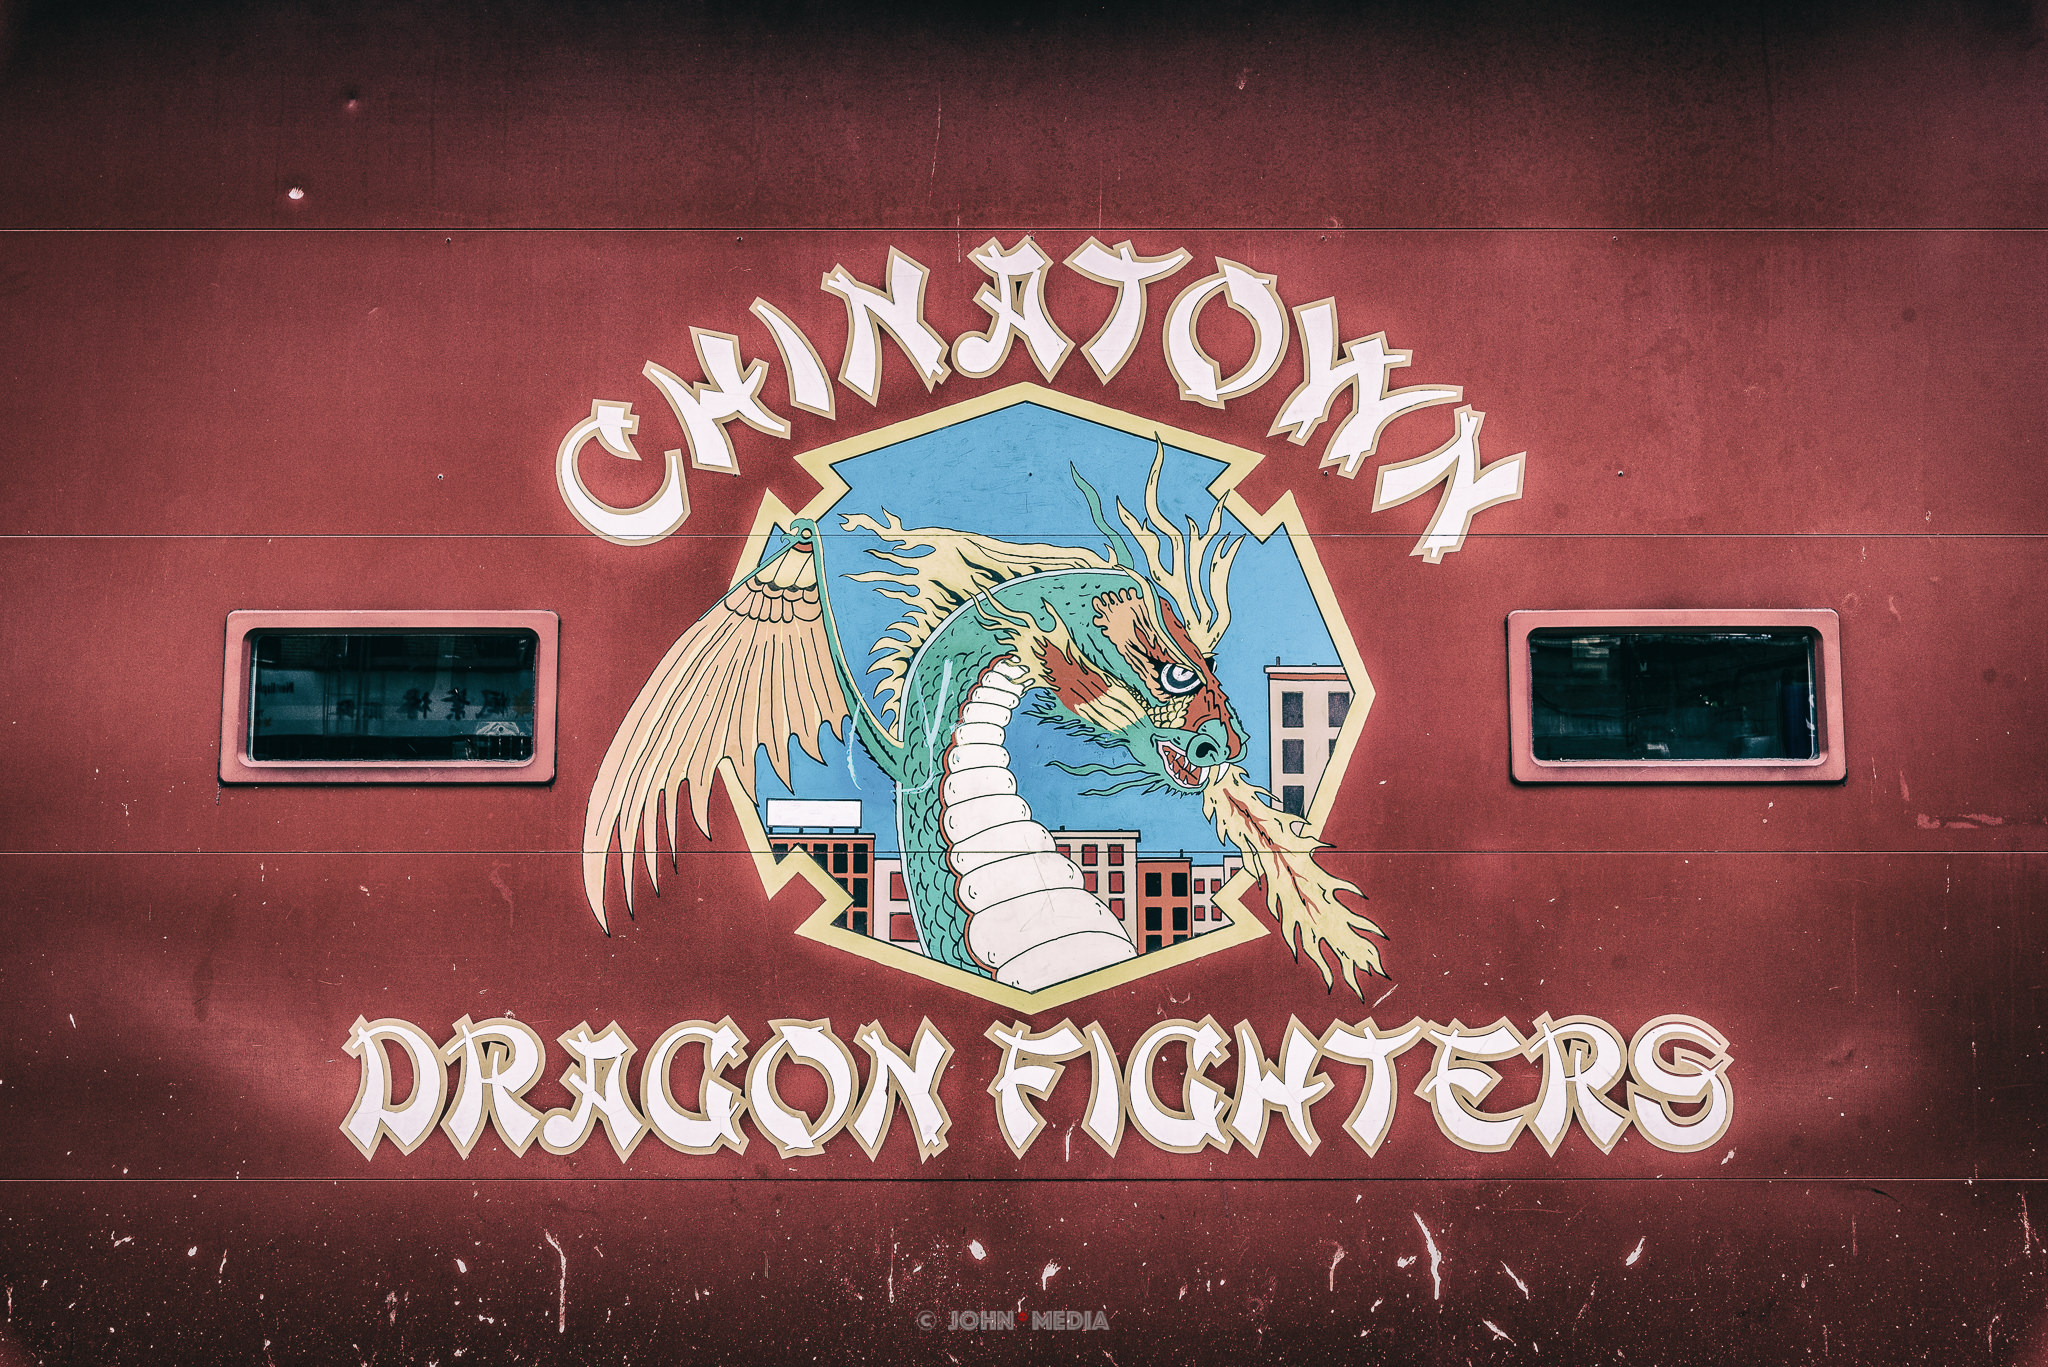 New York Chinatown Dragon Fighters